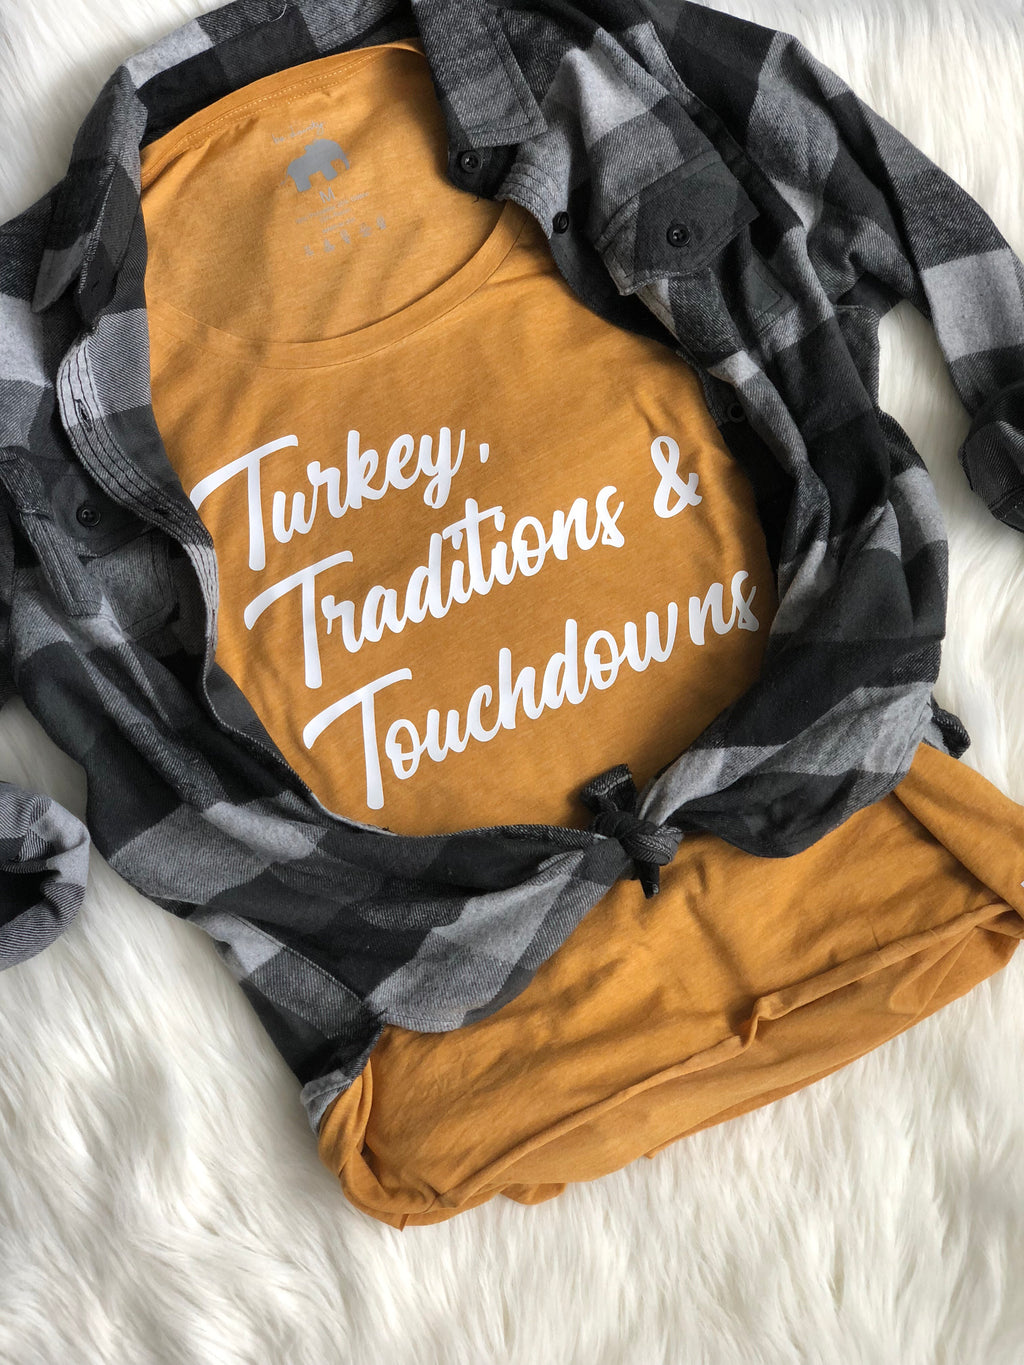 Turkey, Traditions and Touchdowns